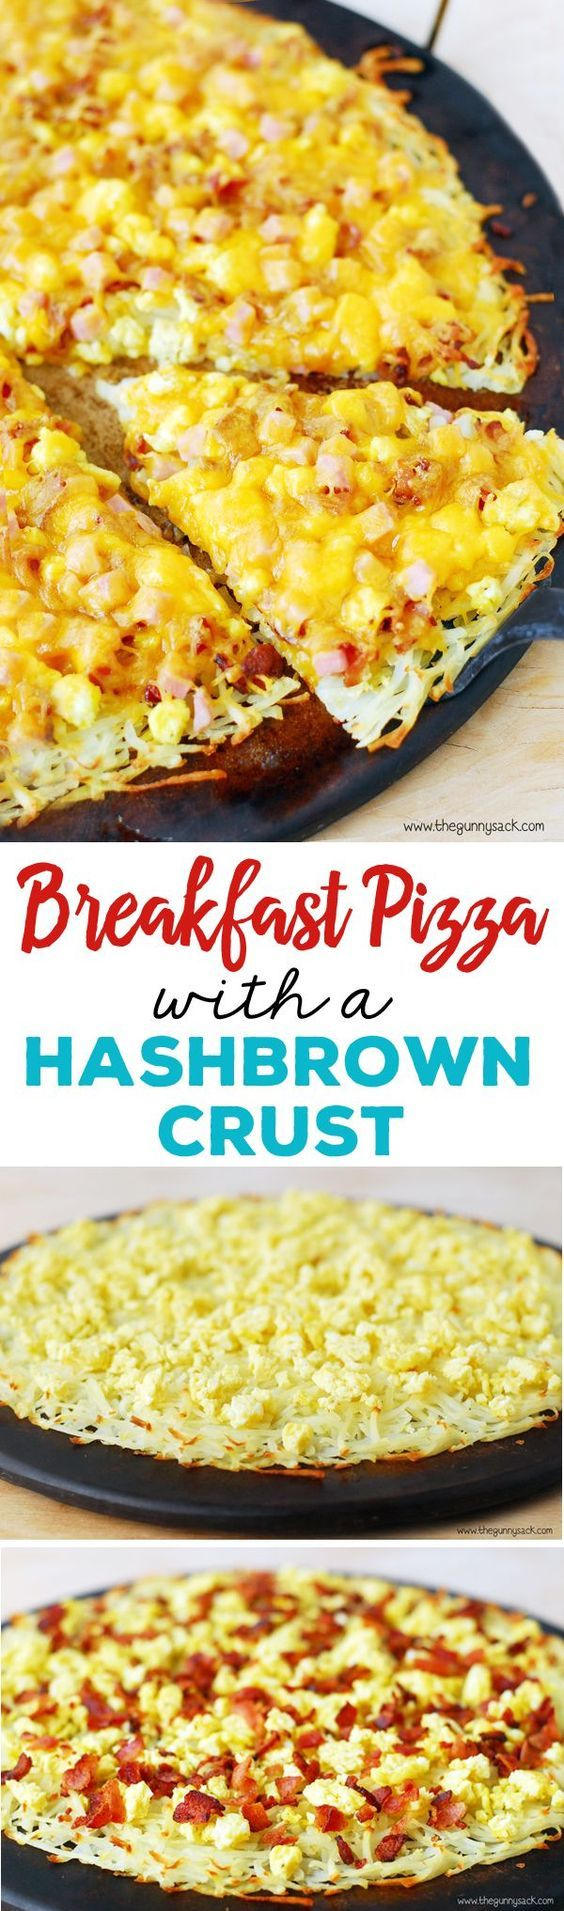 Breakfast PIzza with a Hash Brown Crust Recipe